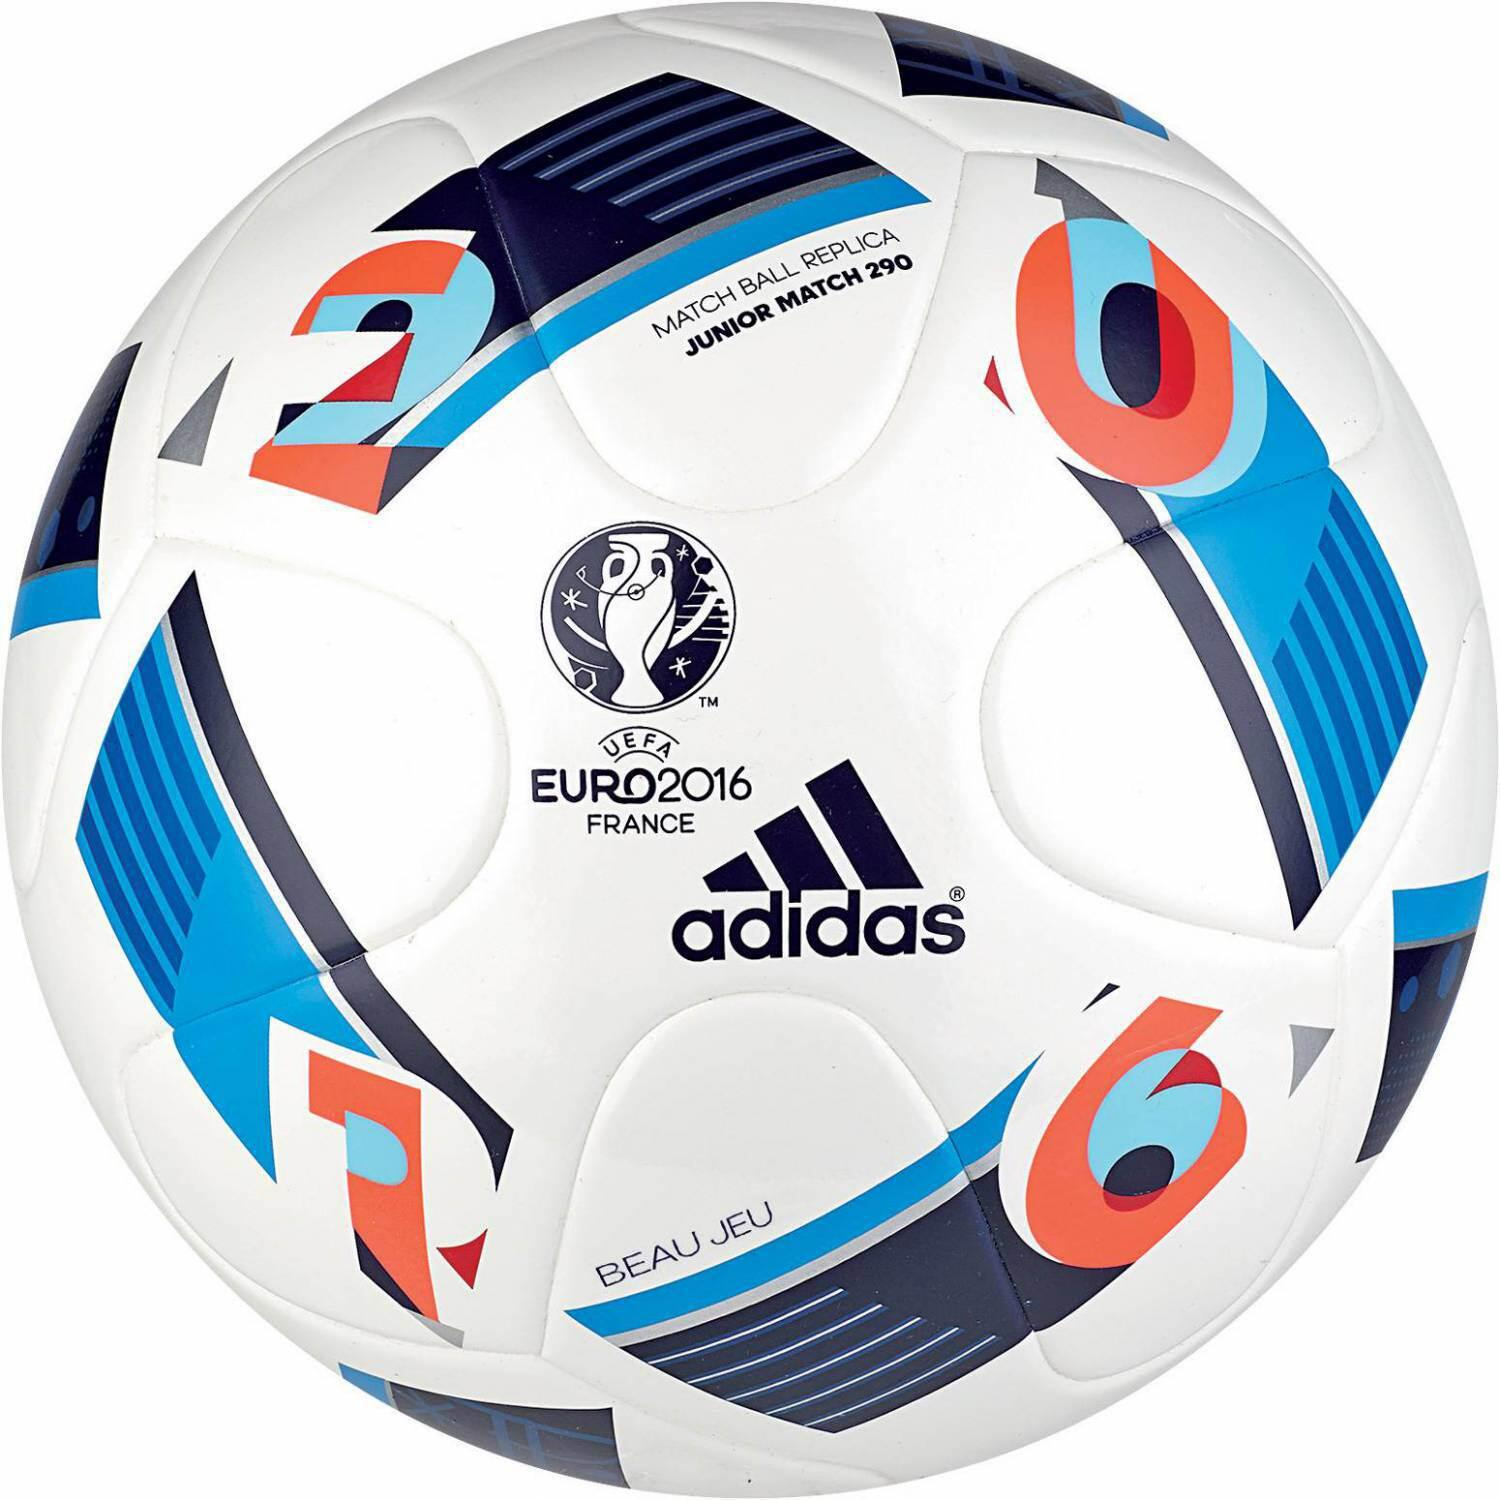 adidas-euro-2016-junior-match-290-kinderfu-szlig-ball-gr-ouml-szlig-e-5-white-bright-blue-night-